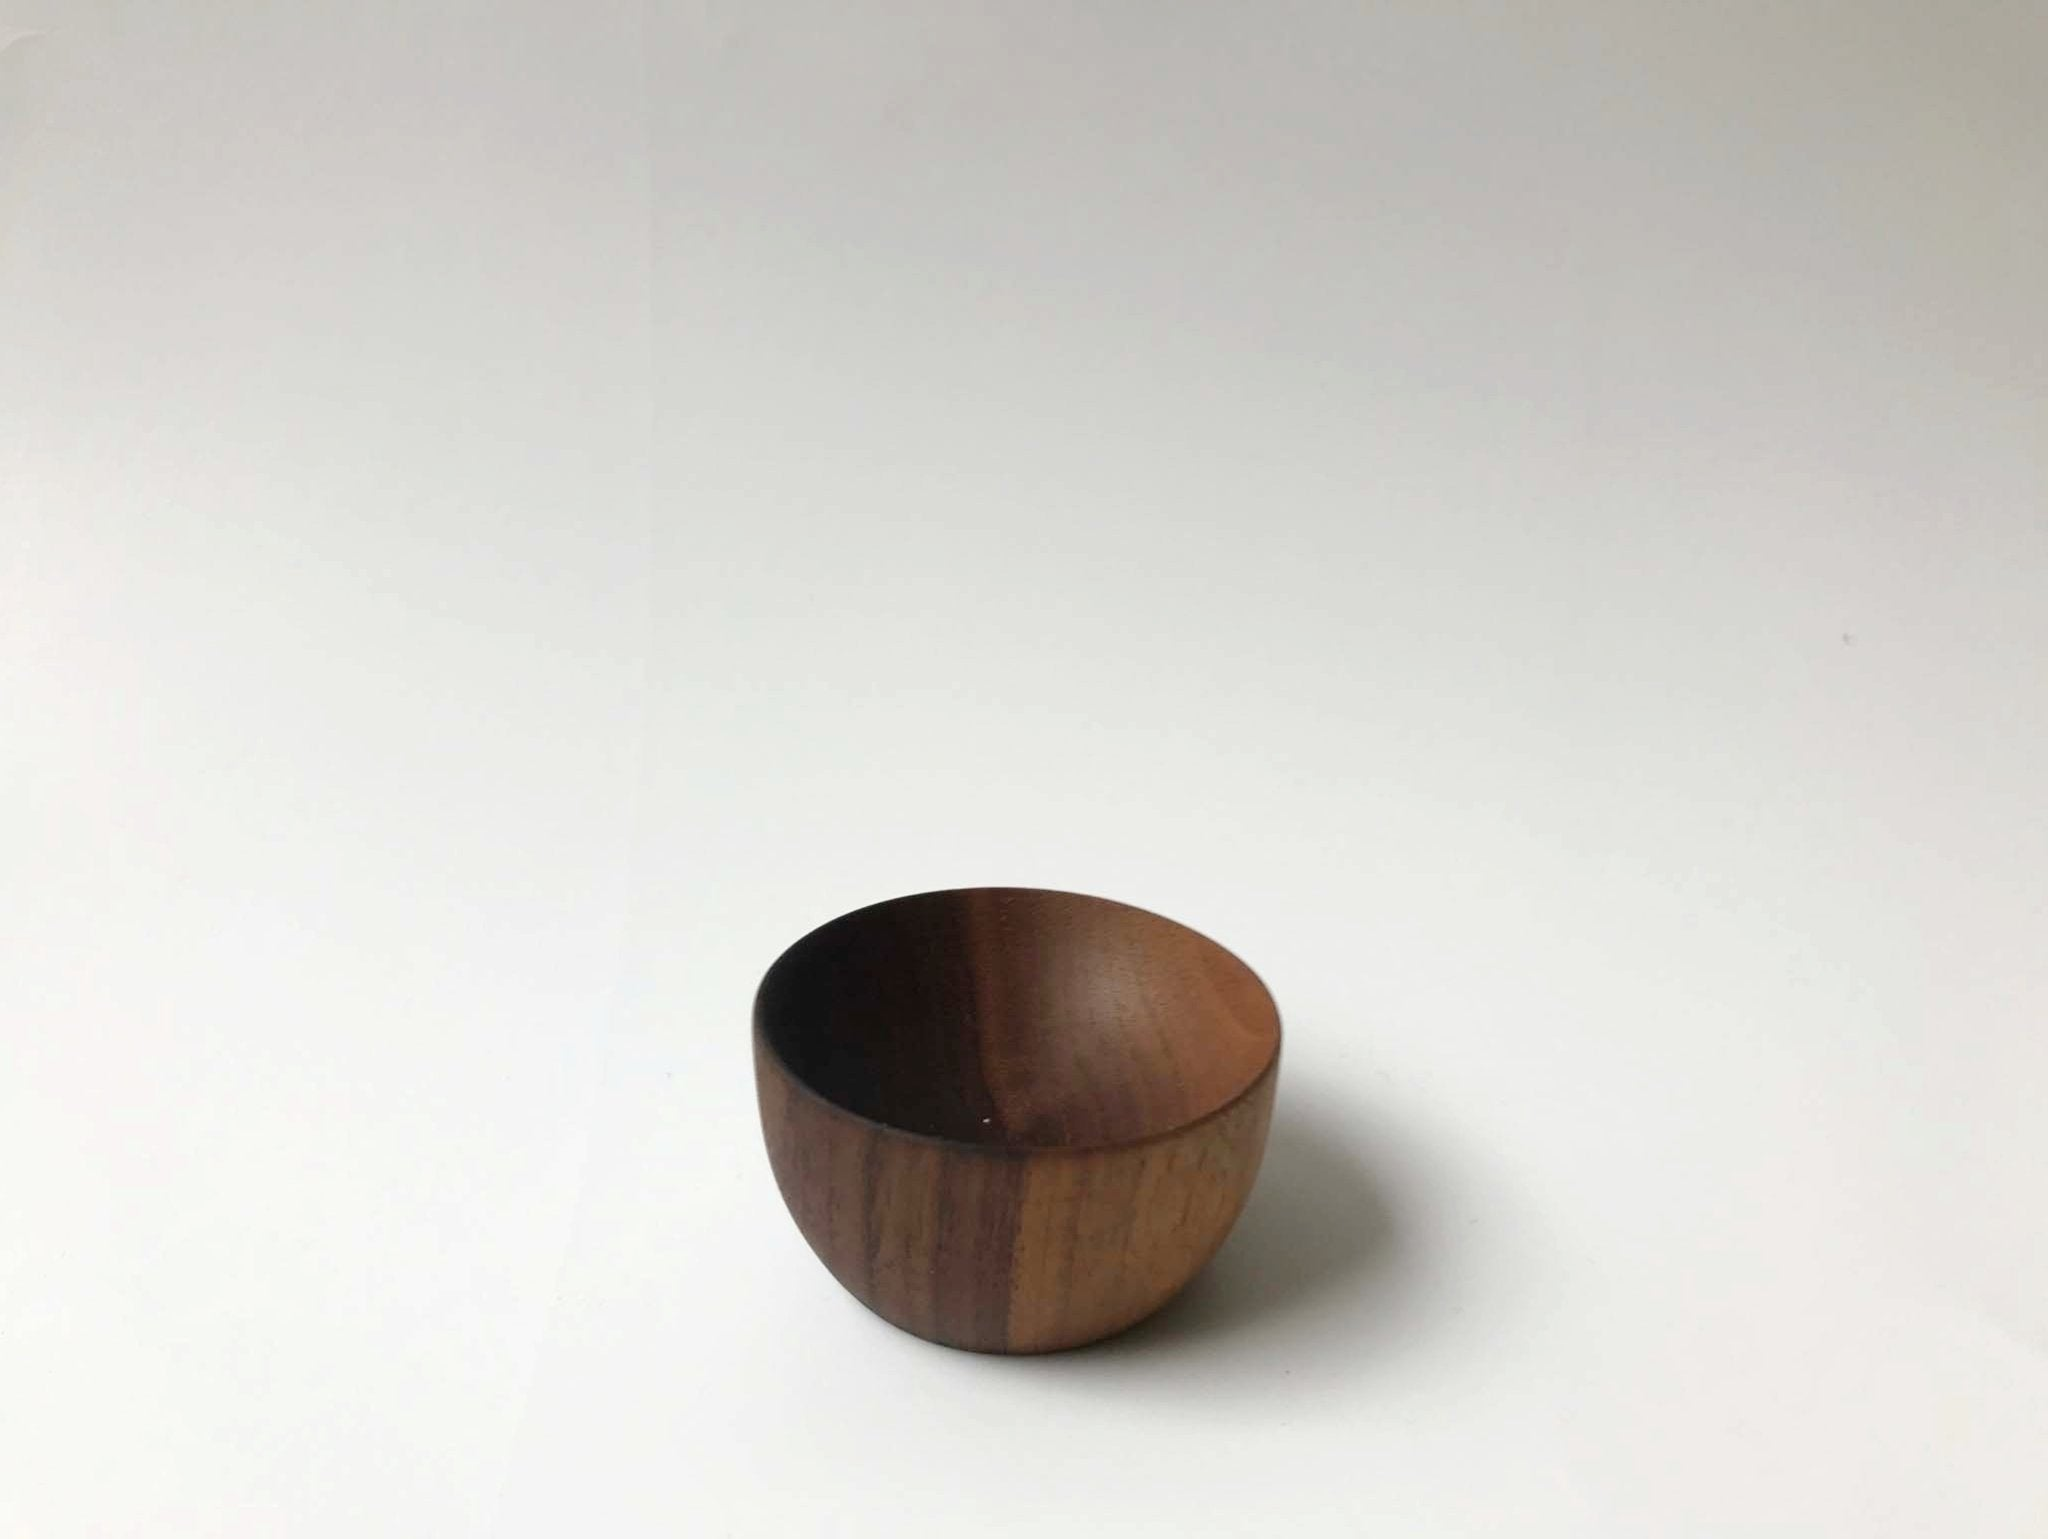 Small Wooden Dishes